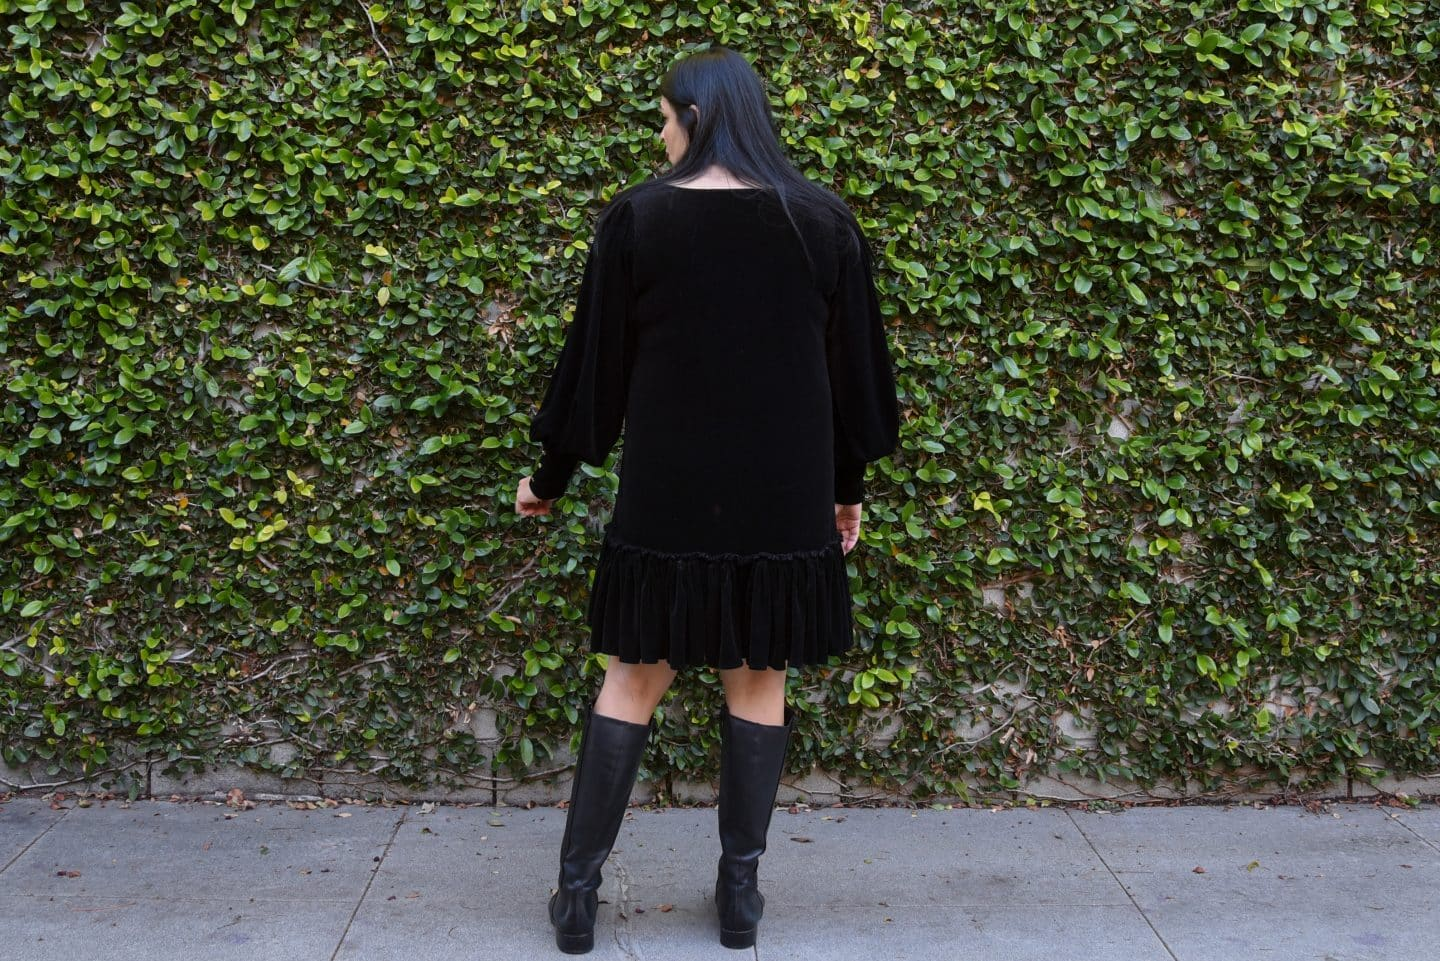 Image of a woman with long black hair with her back to the camera wearing a black velvet dress with bishop sleeves and hem ruffles standing in front of a wall covered in vines.